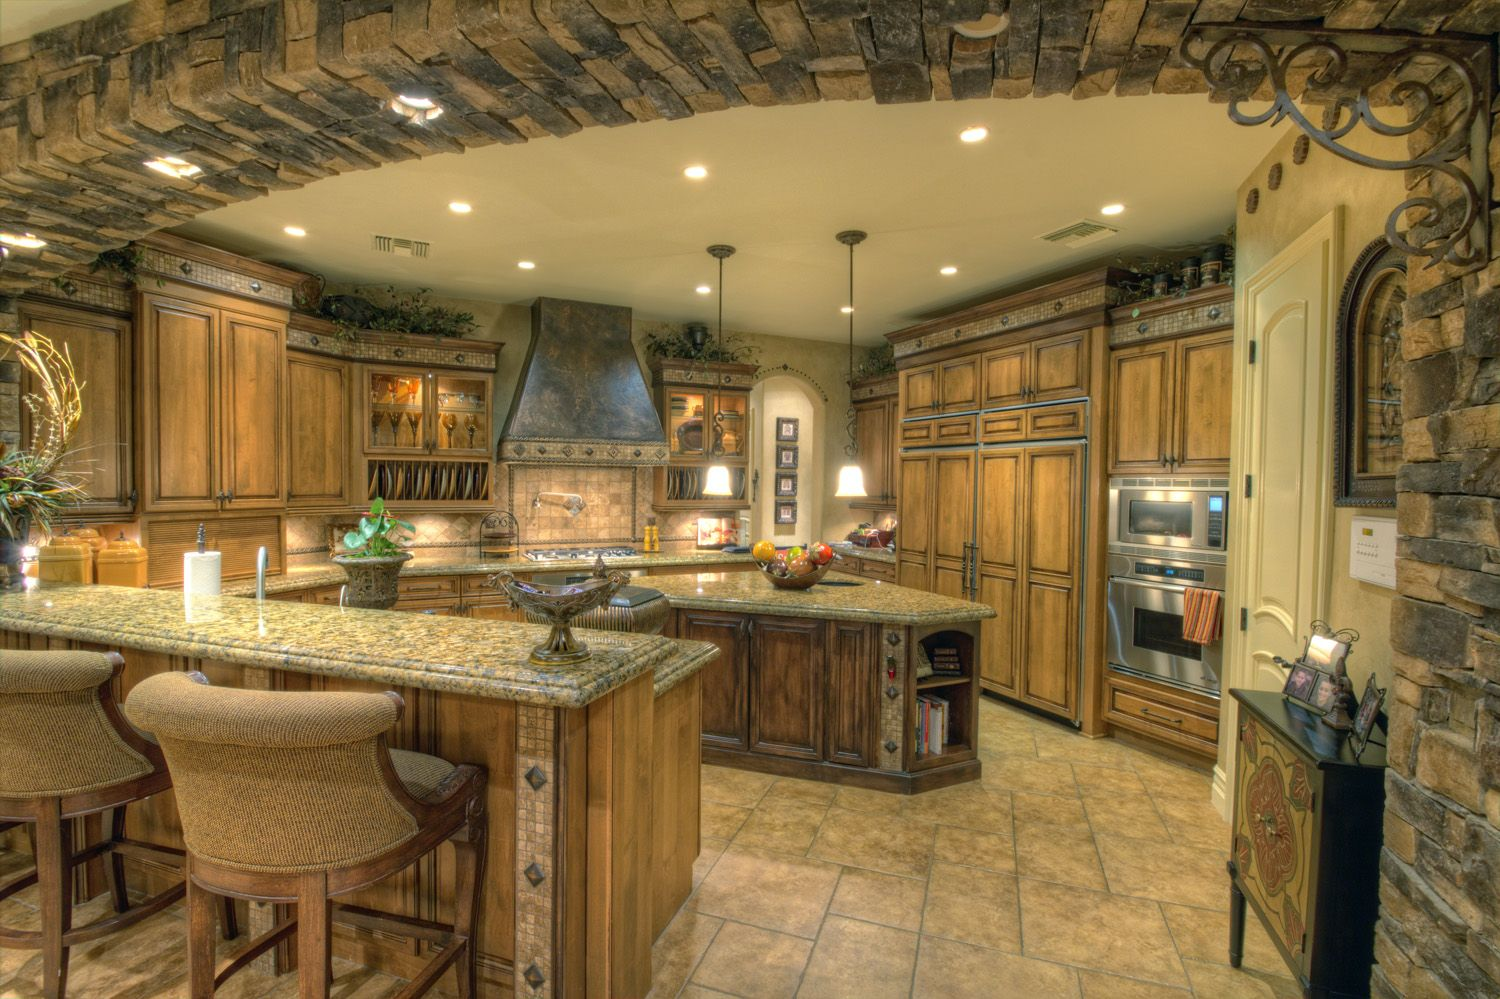 Luxury Kitchens | luxury-estate-kitchen.jpg | Designer Kitchens ...